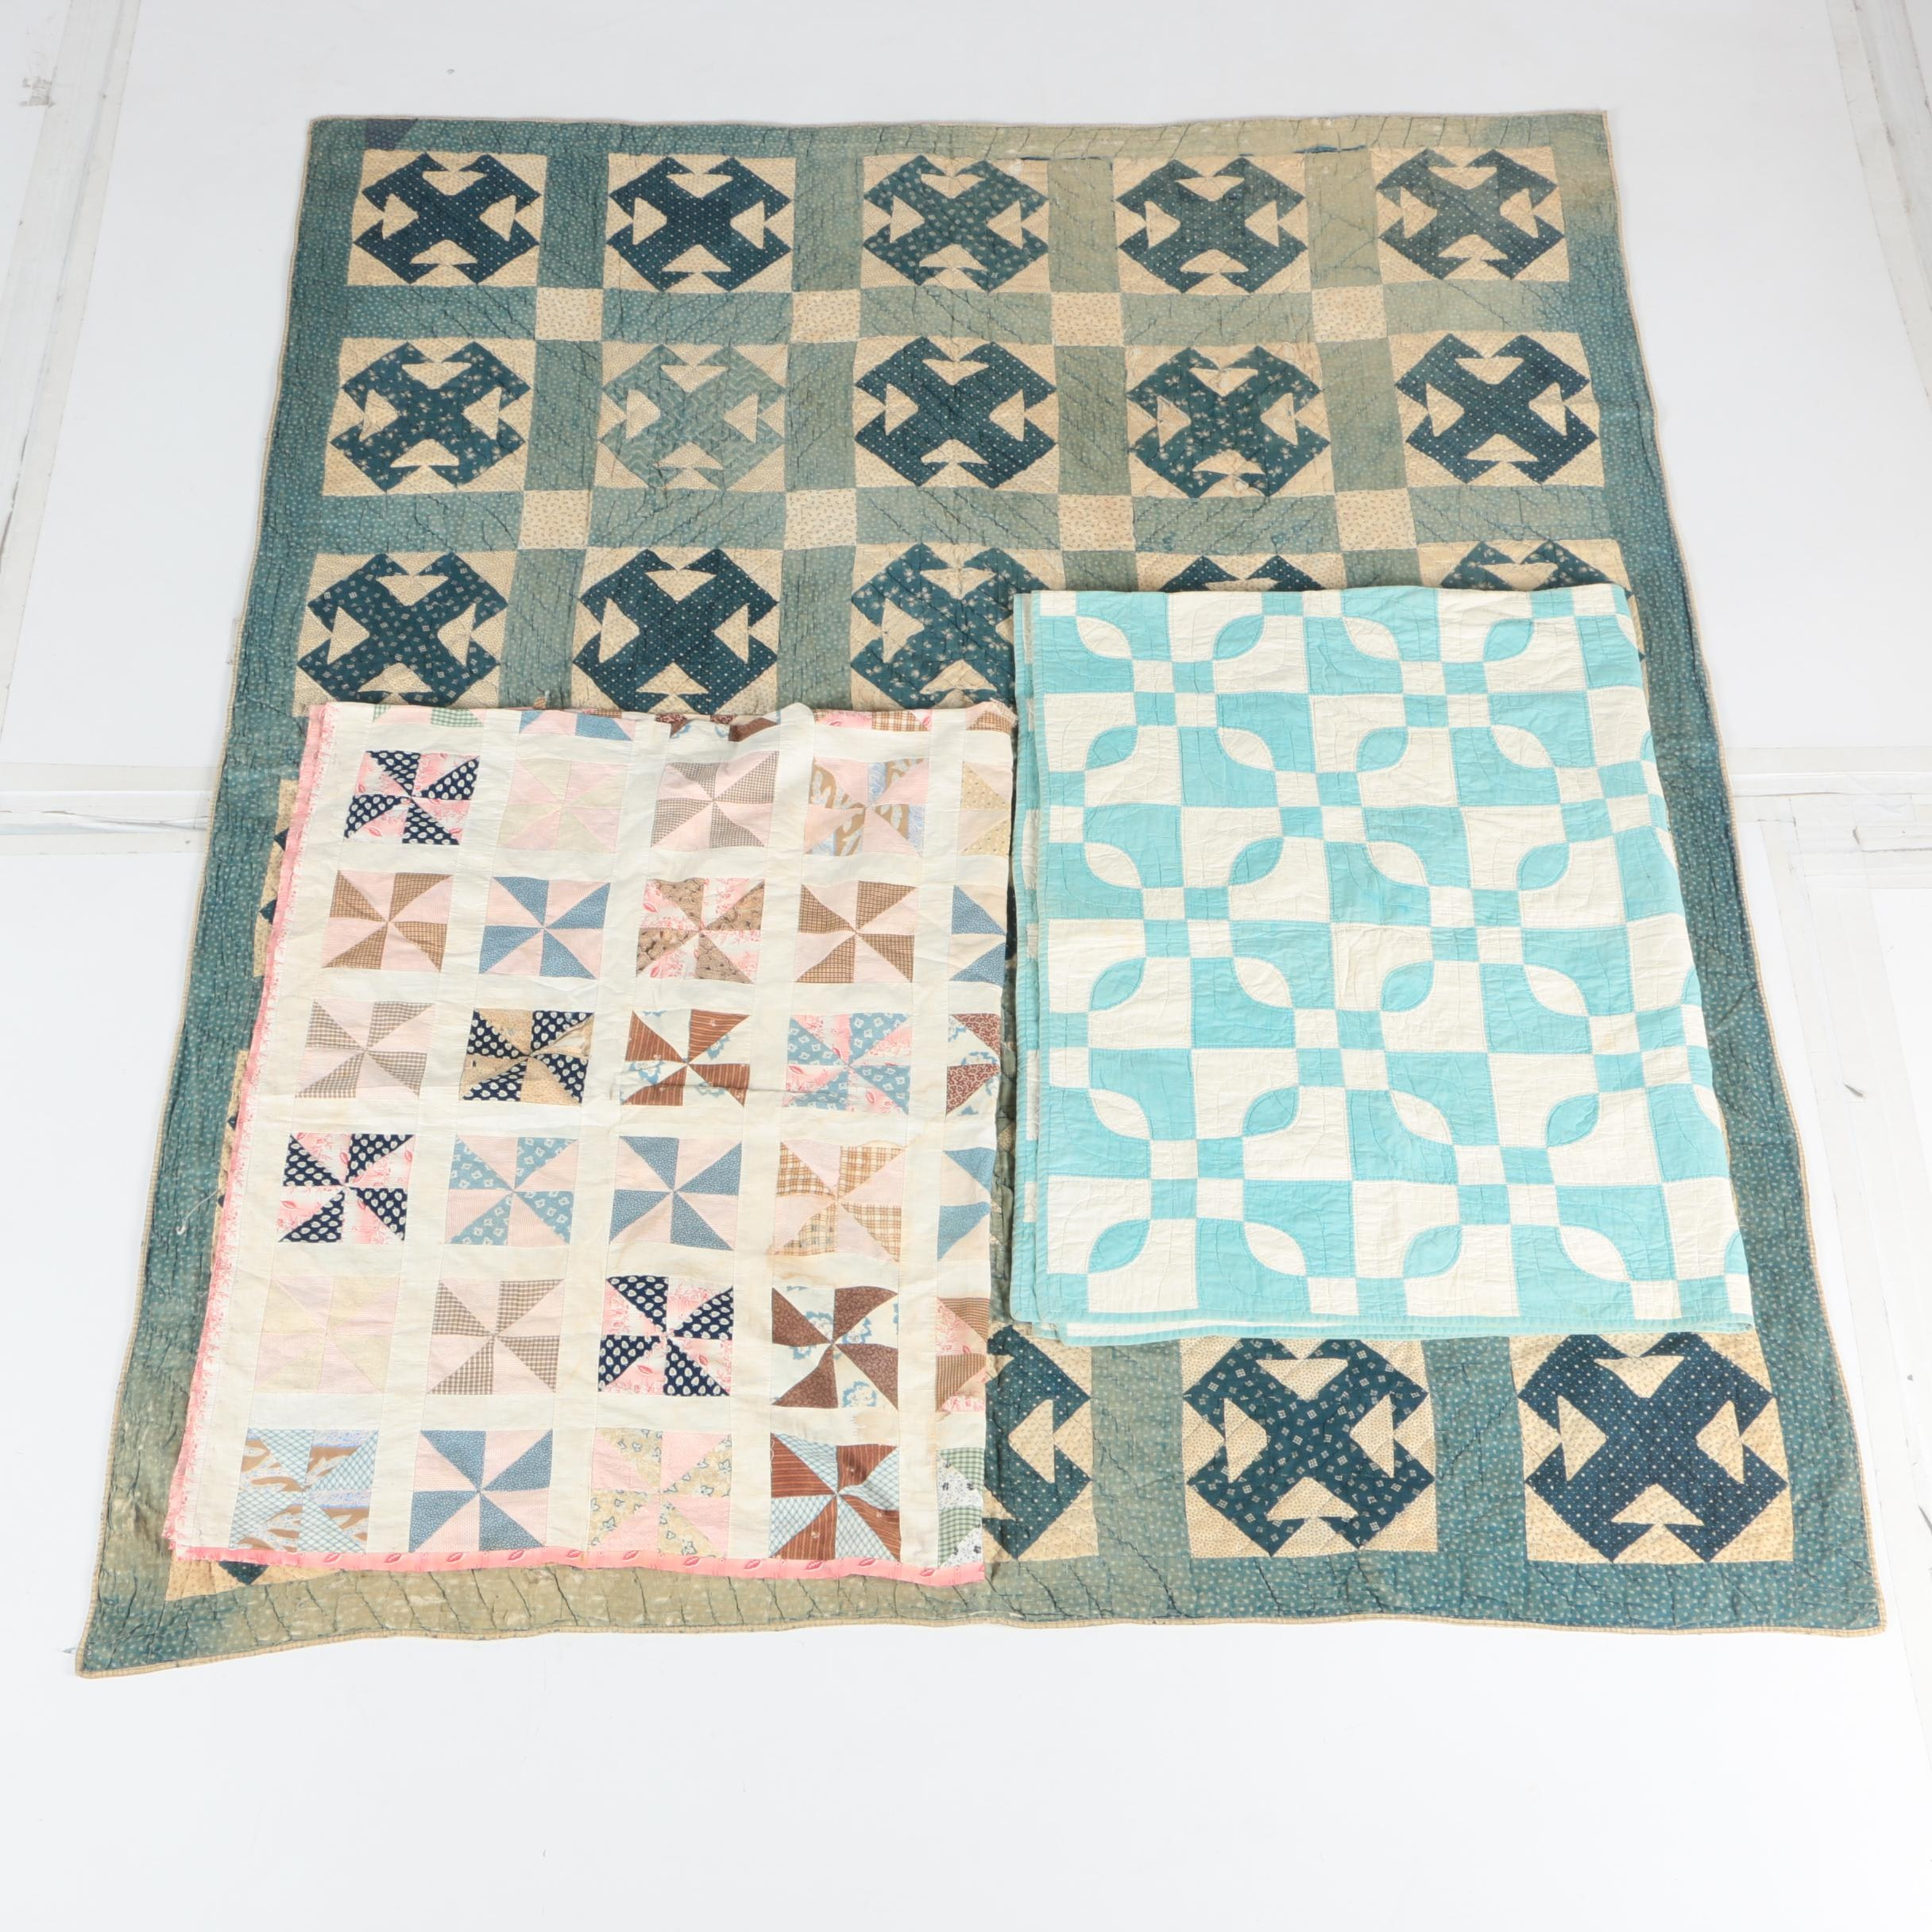 Antique and Vintage Handmade Quilts and Quilt Top